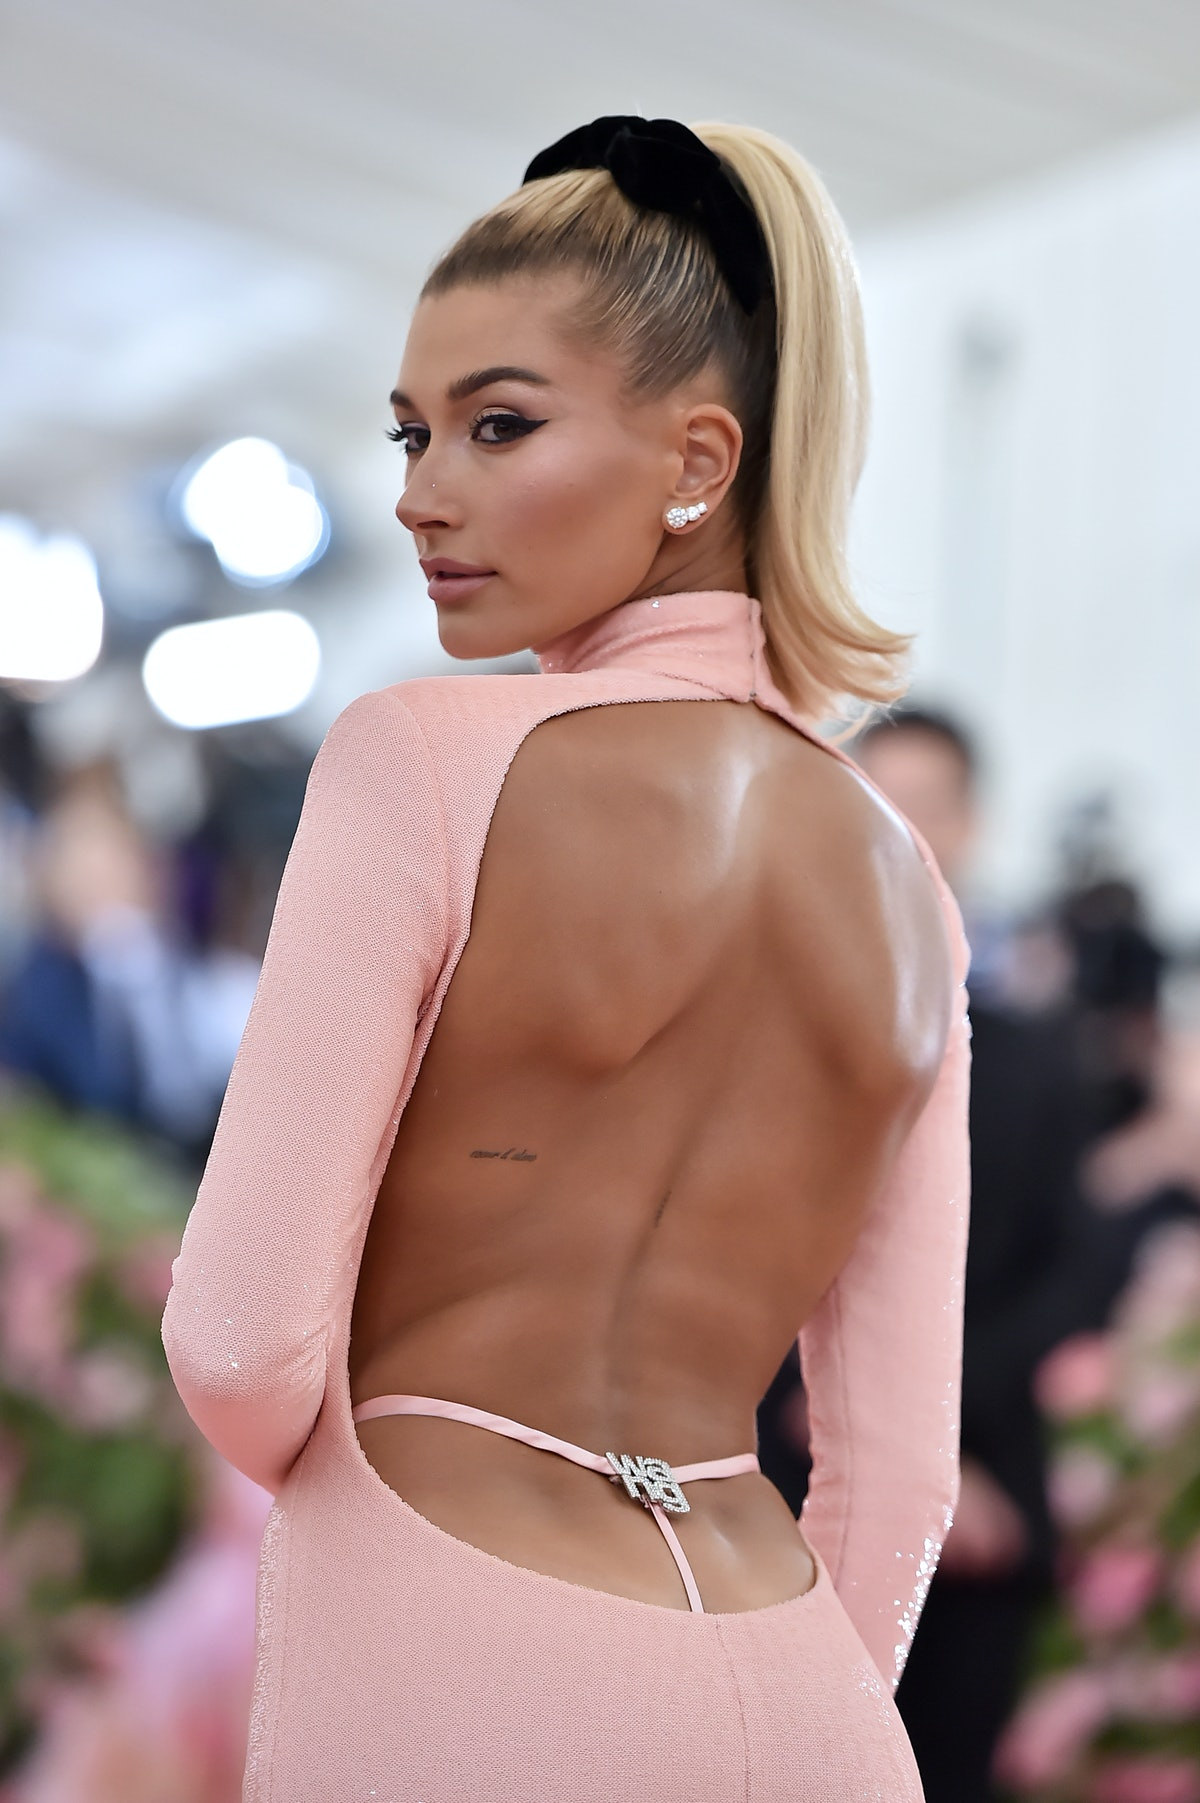 Hailey Bieber attends The 2019 Met Gala wearing a '90s-inspired outfit.